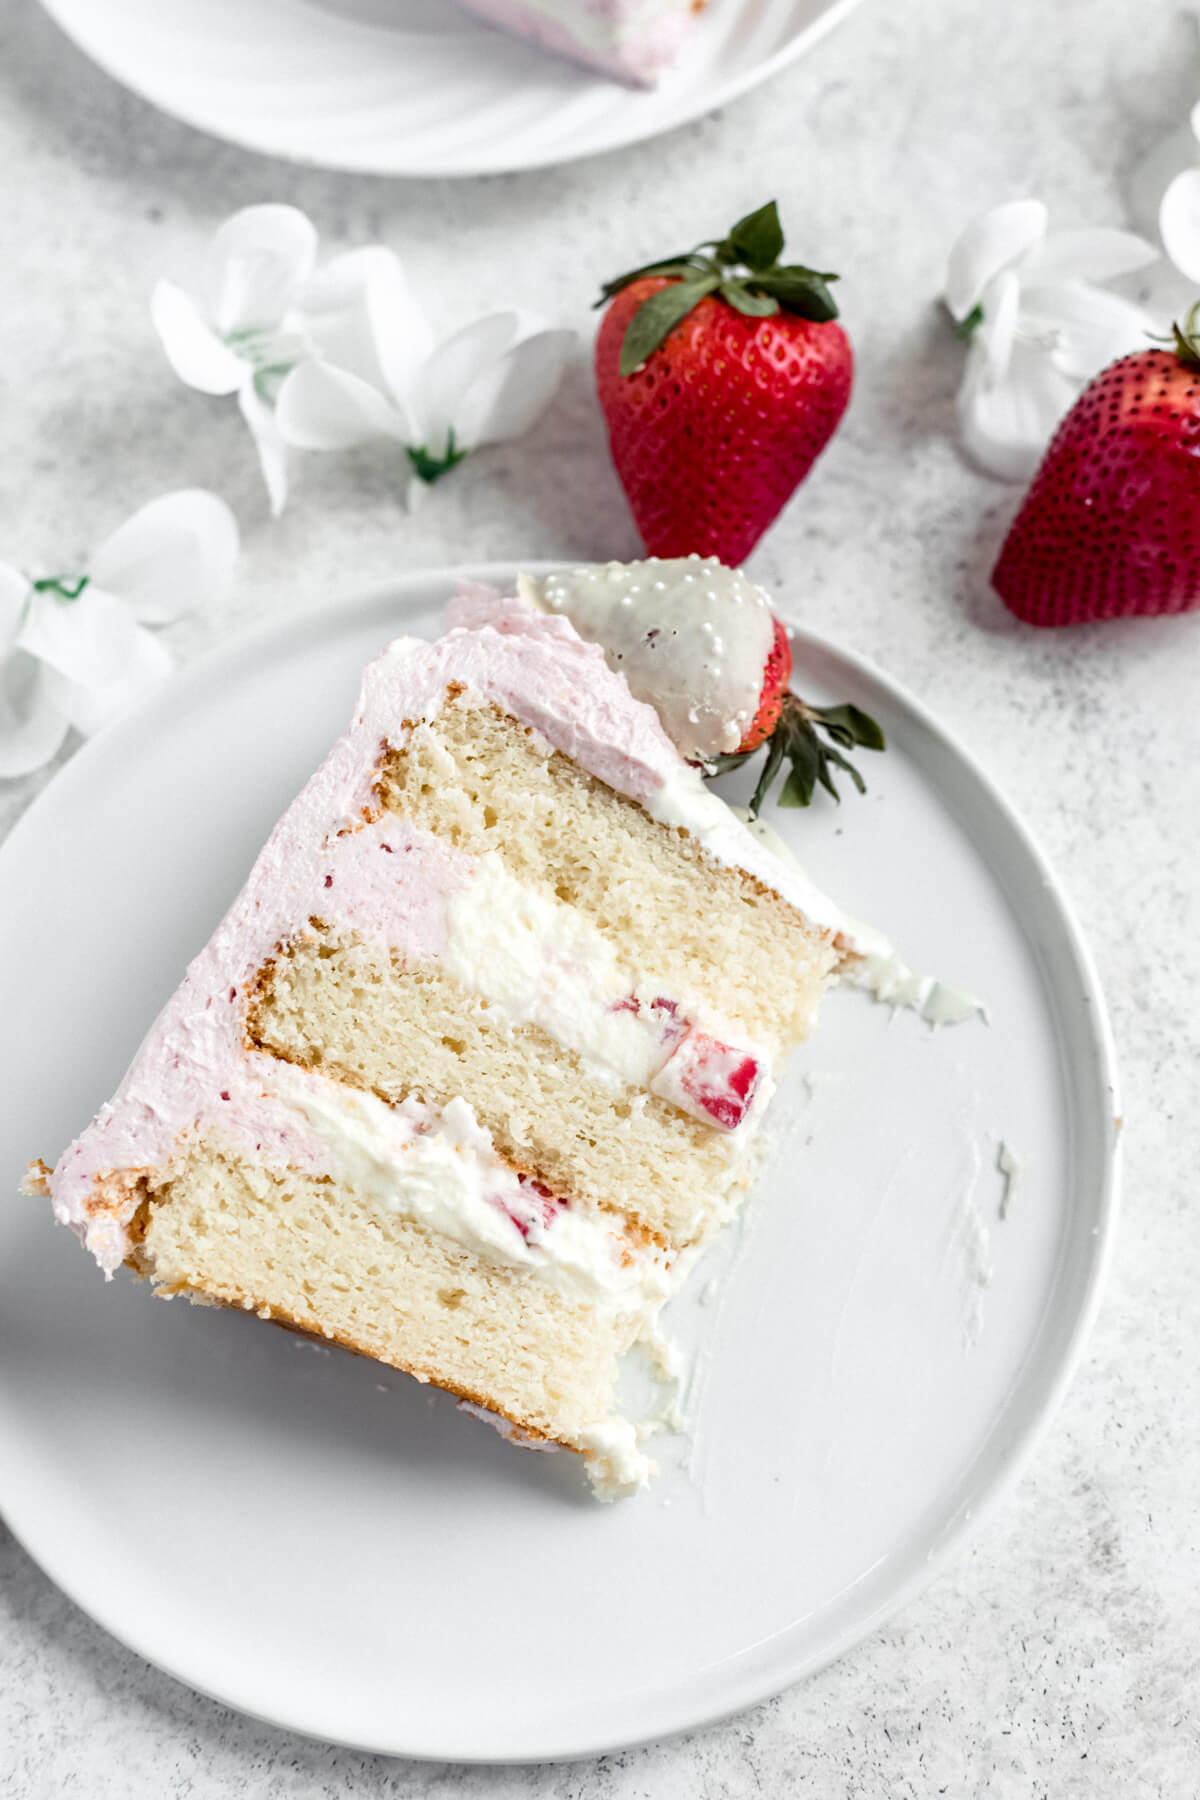 slice of white cake with mousse filling on a white plate with strawberries beside